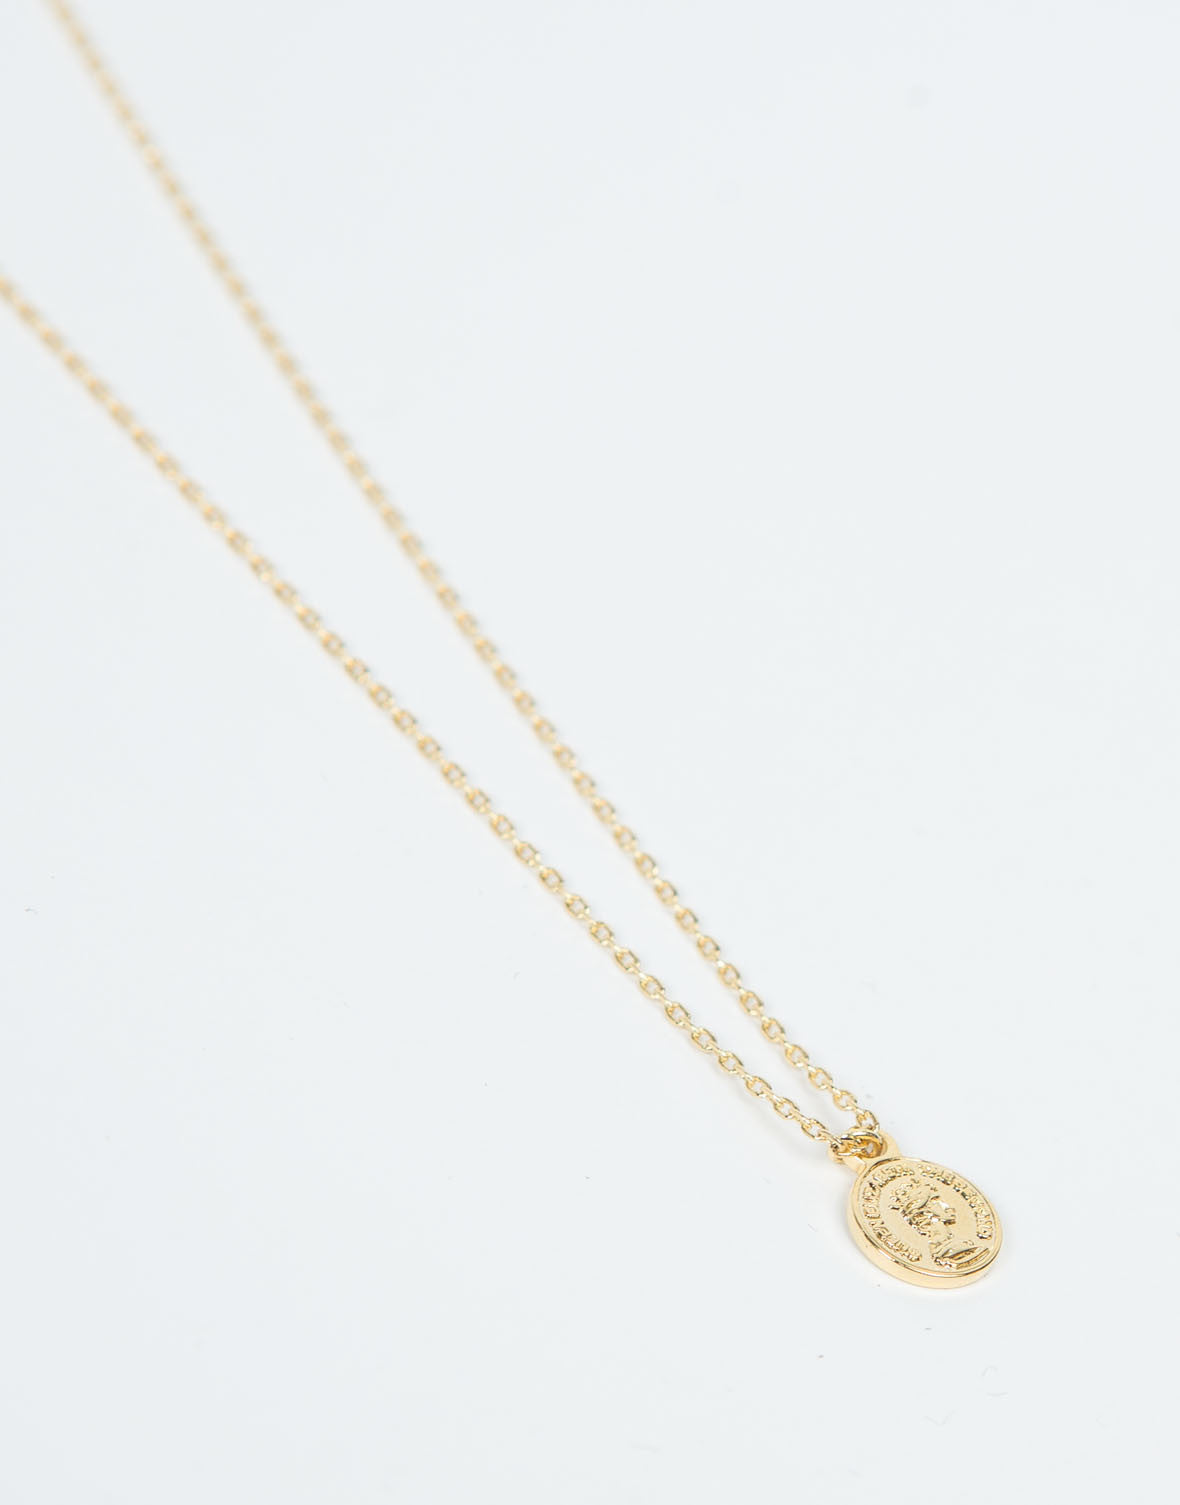 Detail of Mini Coin Pendant Necklace